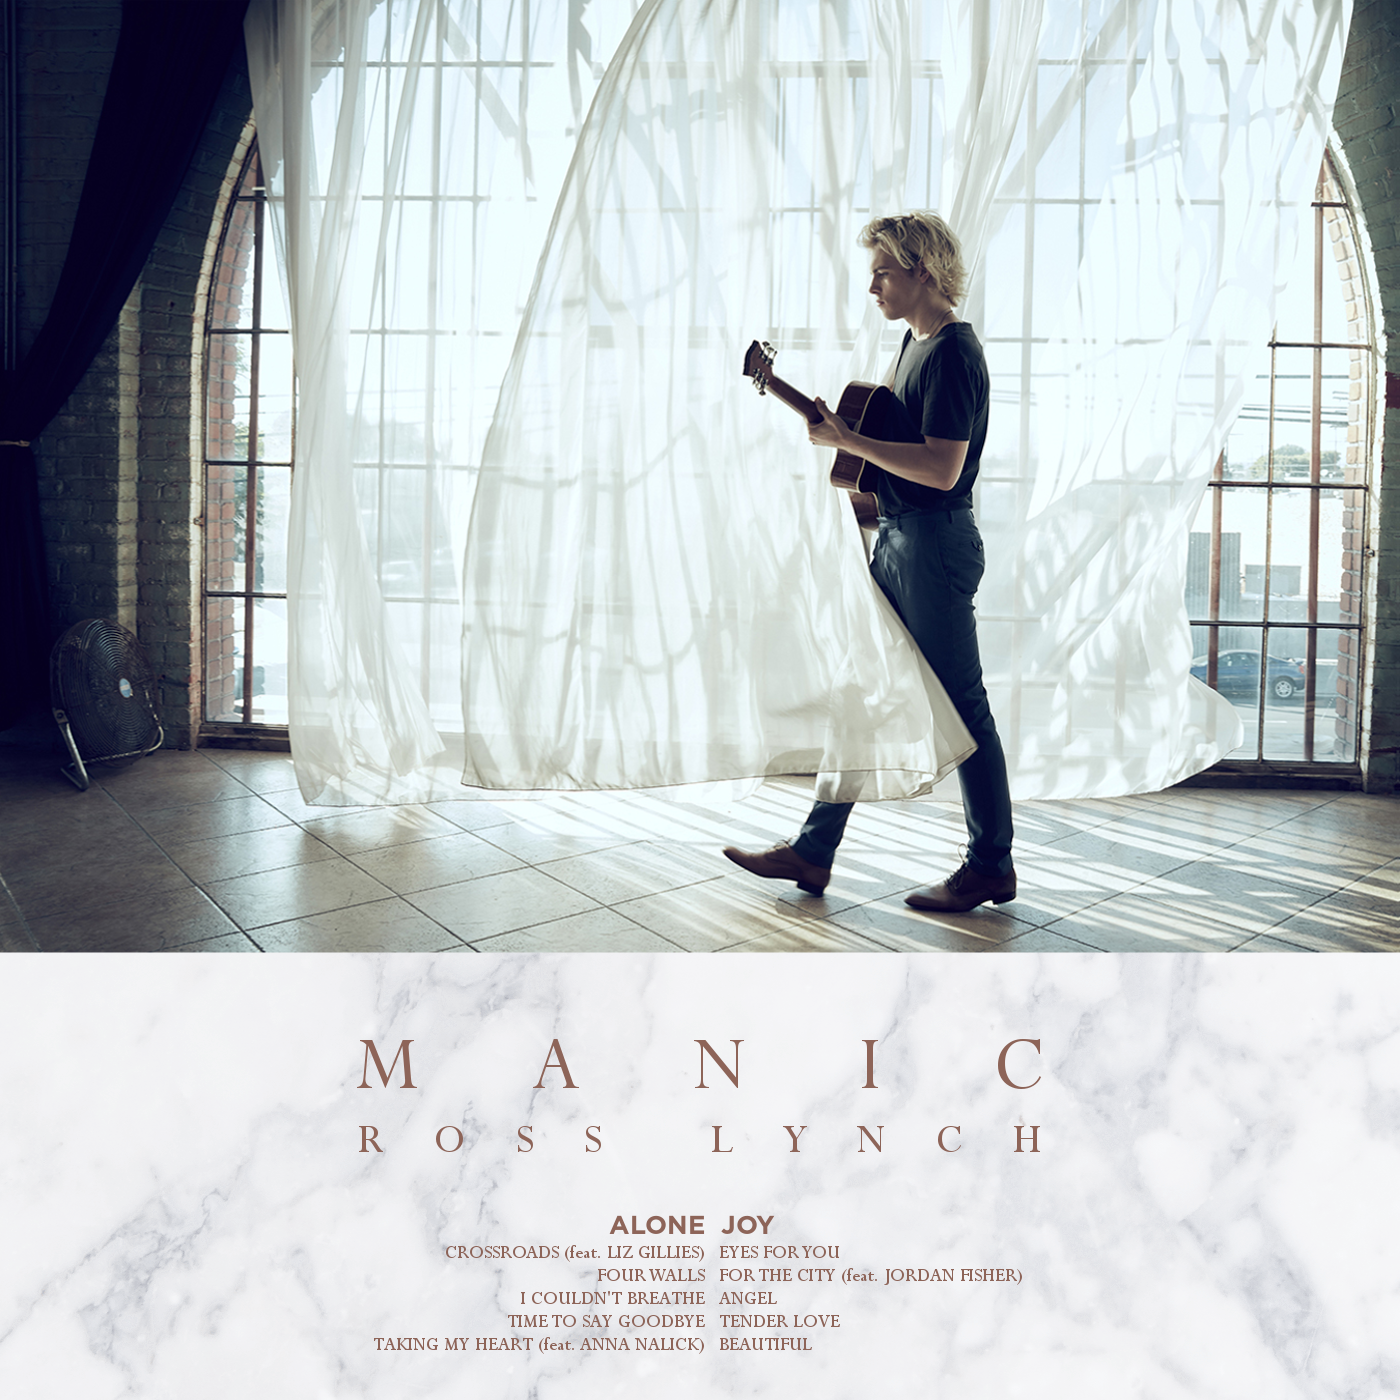 Manic (Ross Lynch album)